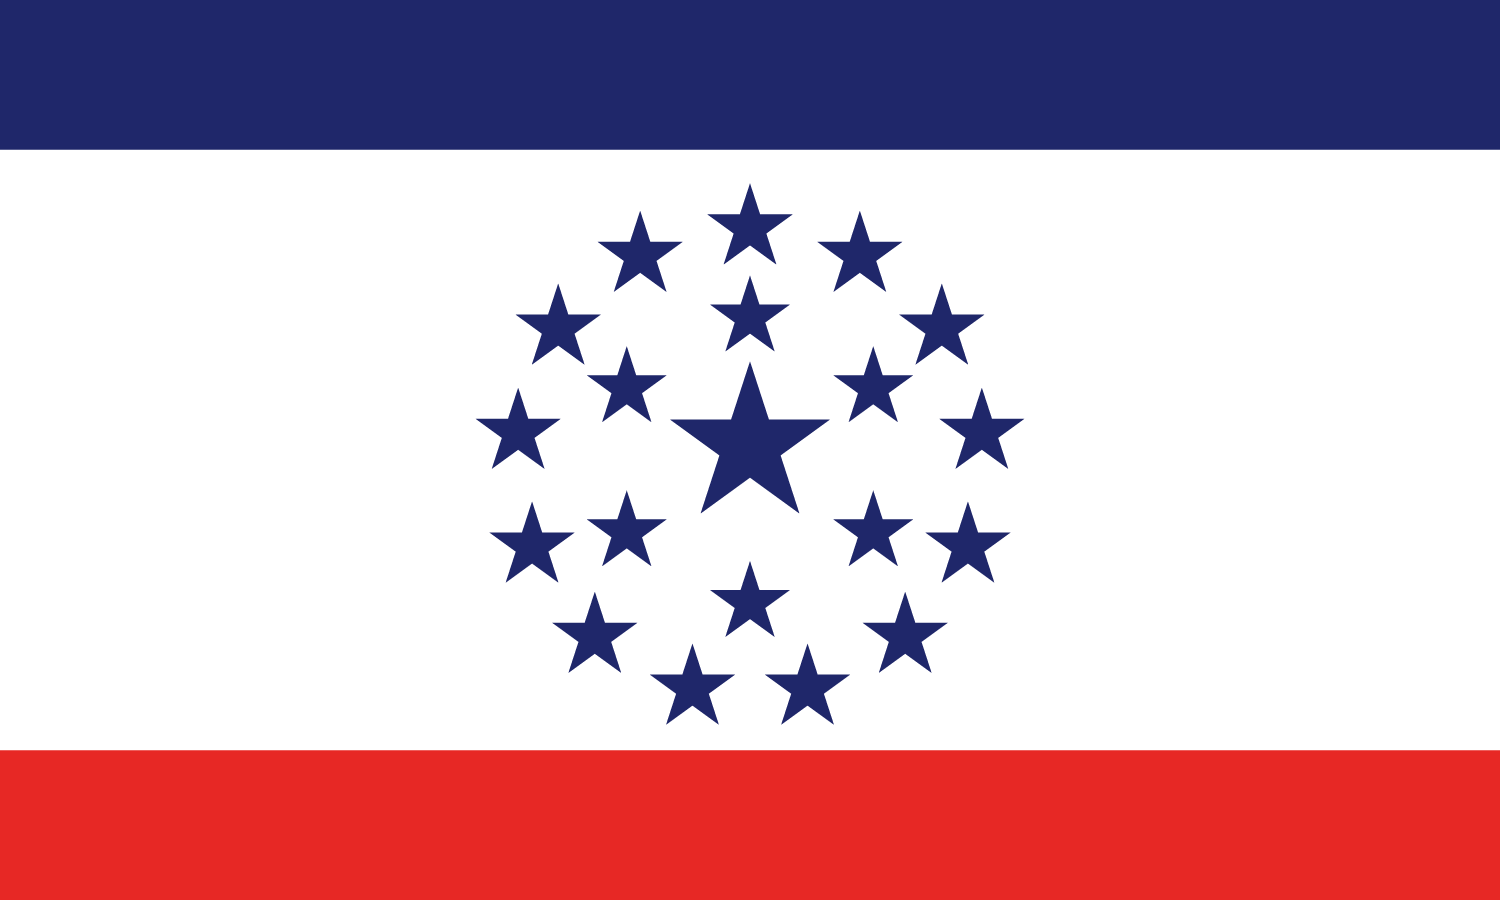 Proposed Flag for the state of Mississippi by Knol Aust